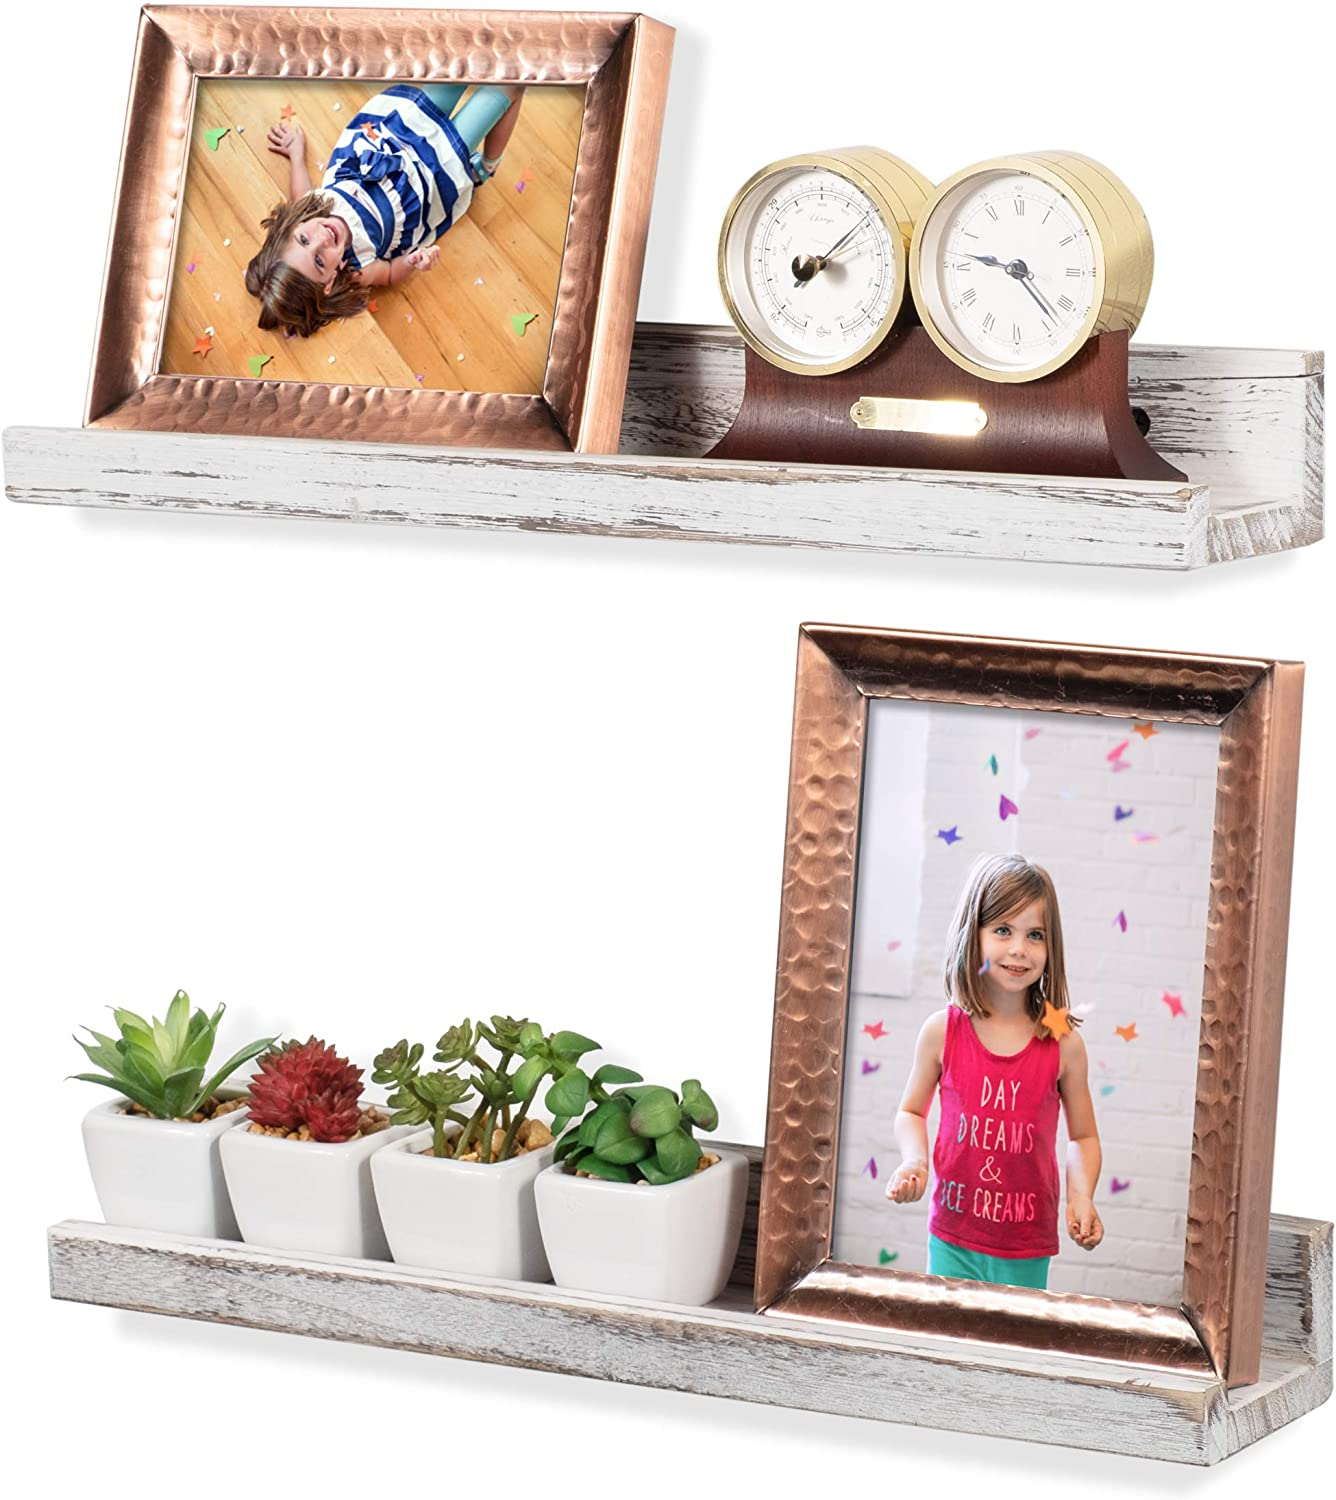 Rustic State Max 67% OFF Ted Wall Mount Ledge Narrow Shelf Display Finally resale start Picture